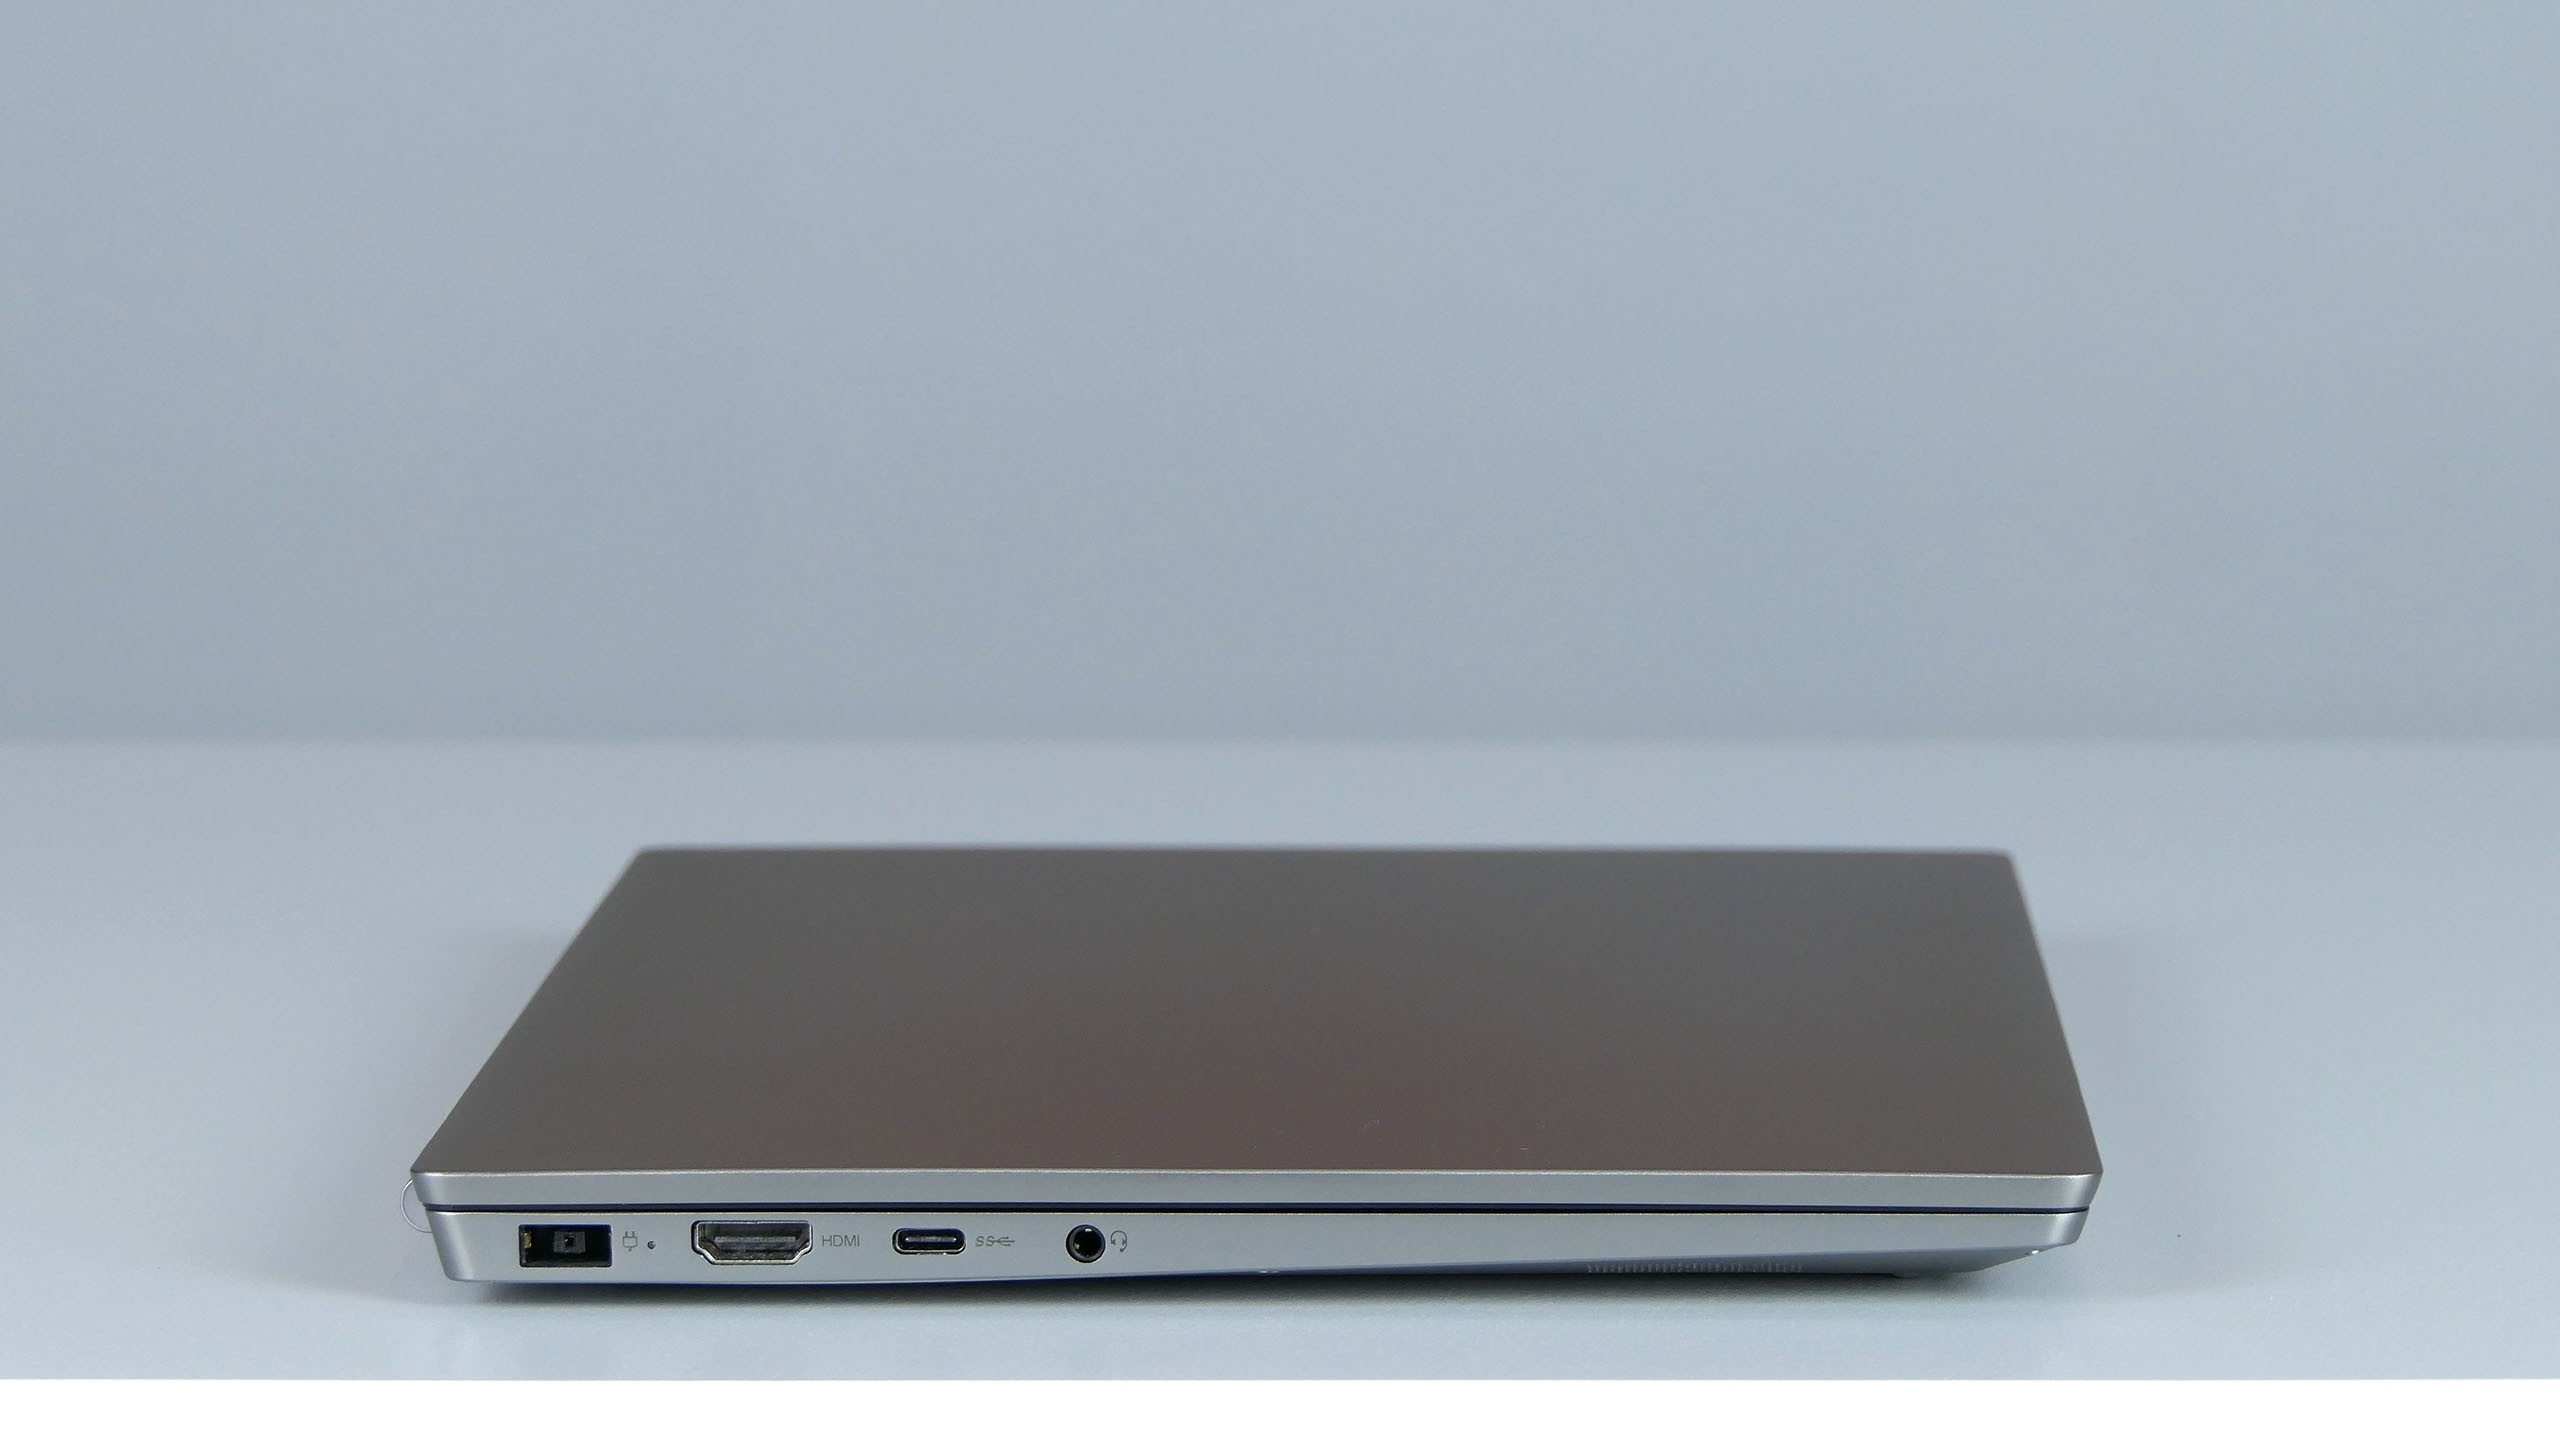 Lenovo ThinkBook 13s - lewy bok laptopa